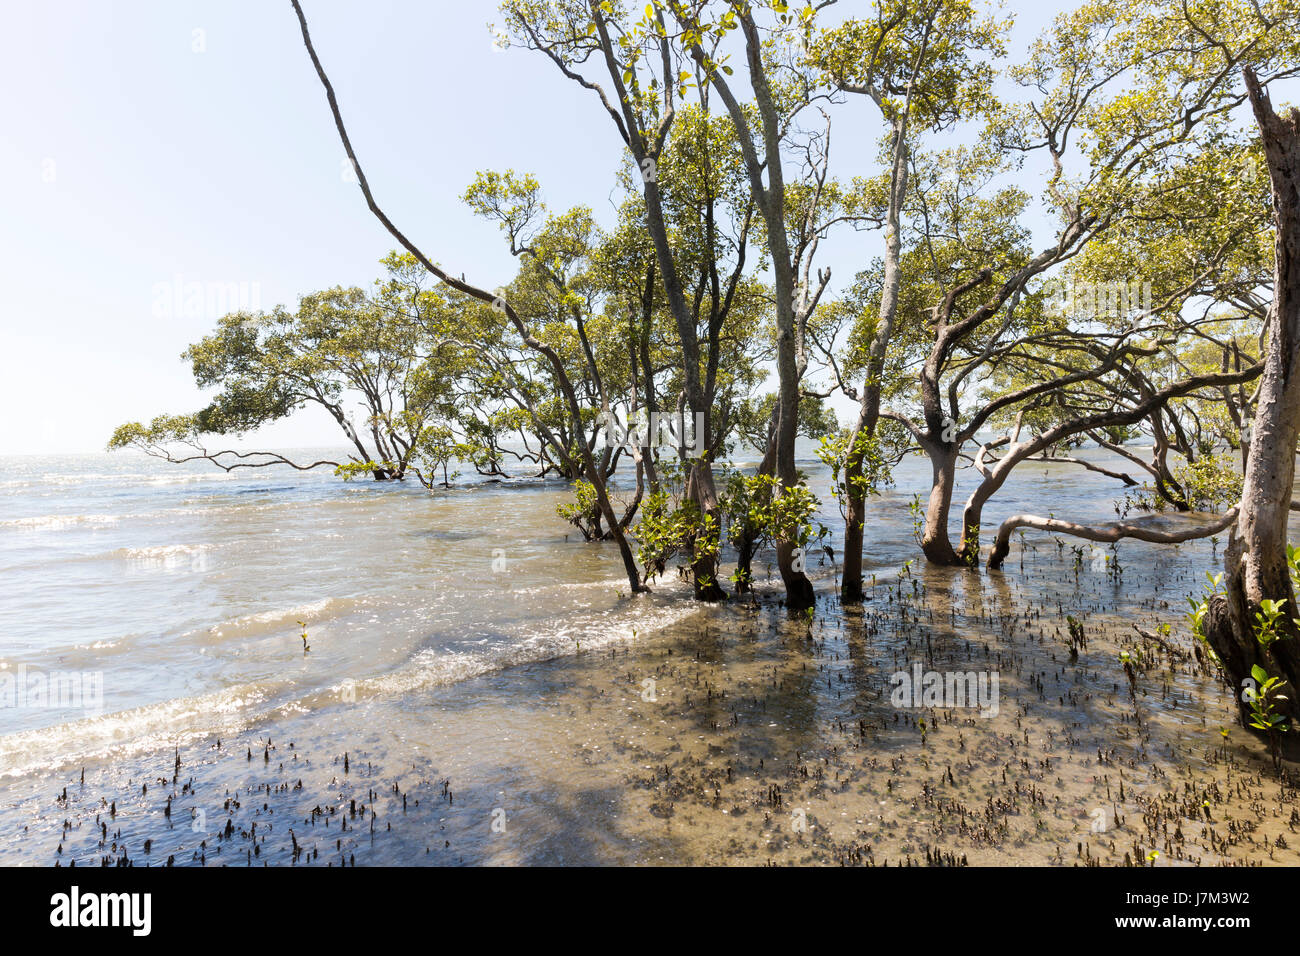 Mangrove trees on the bay. - Stock Image